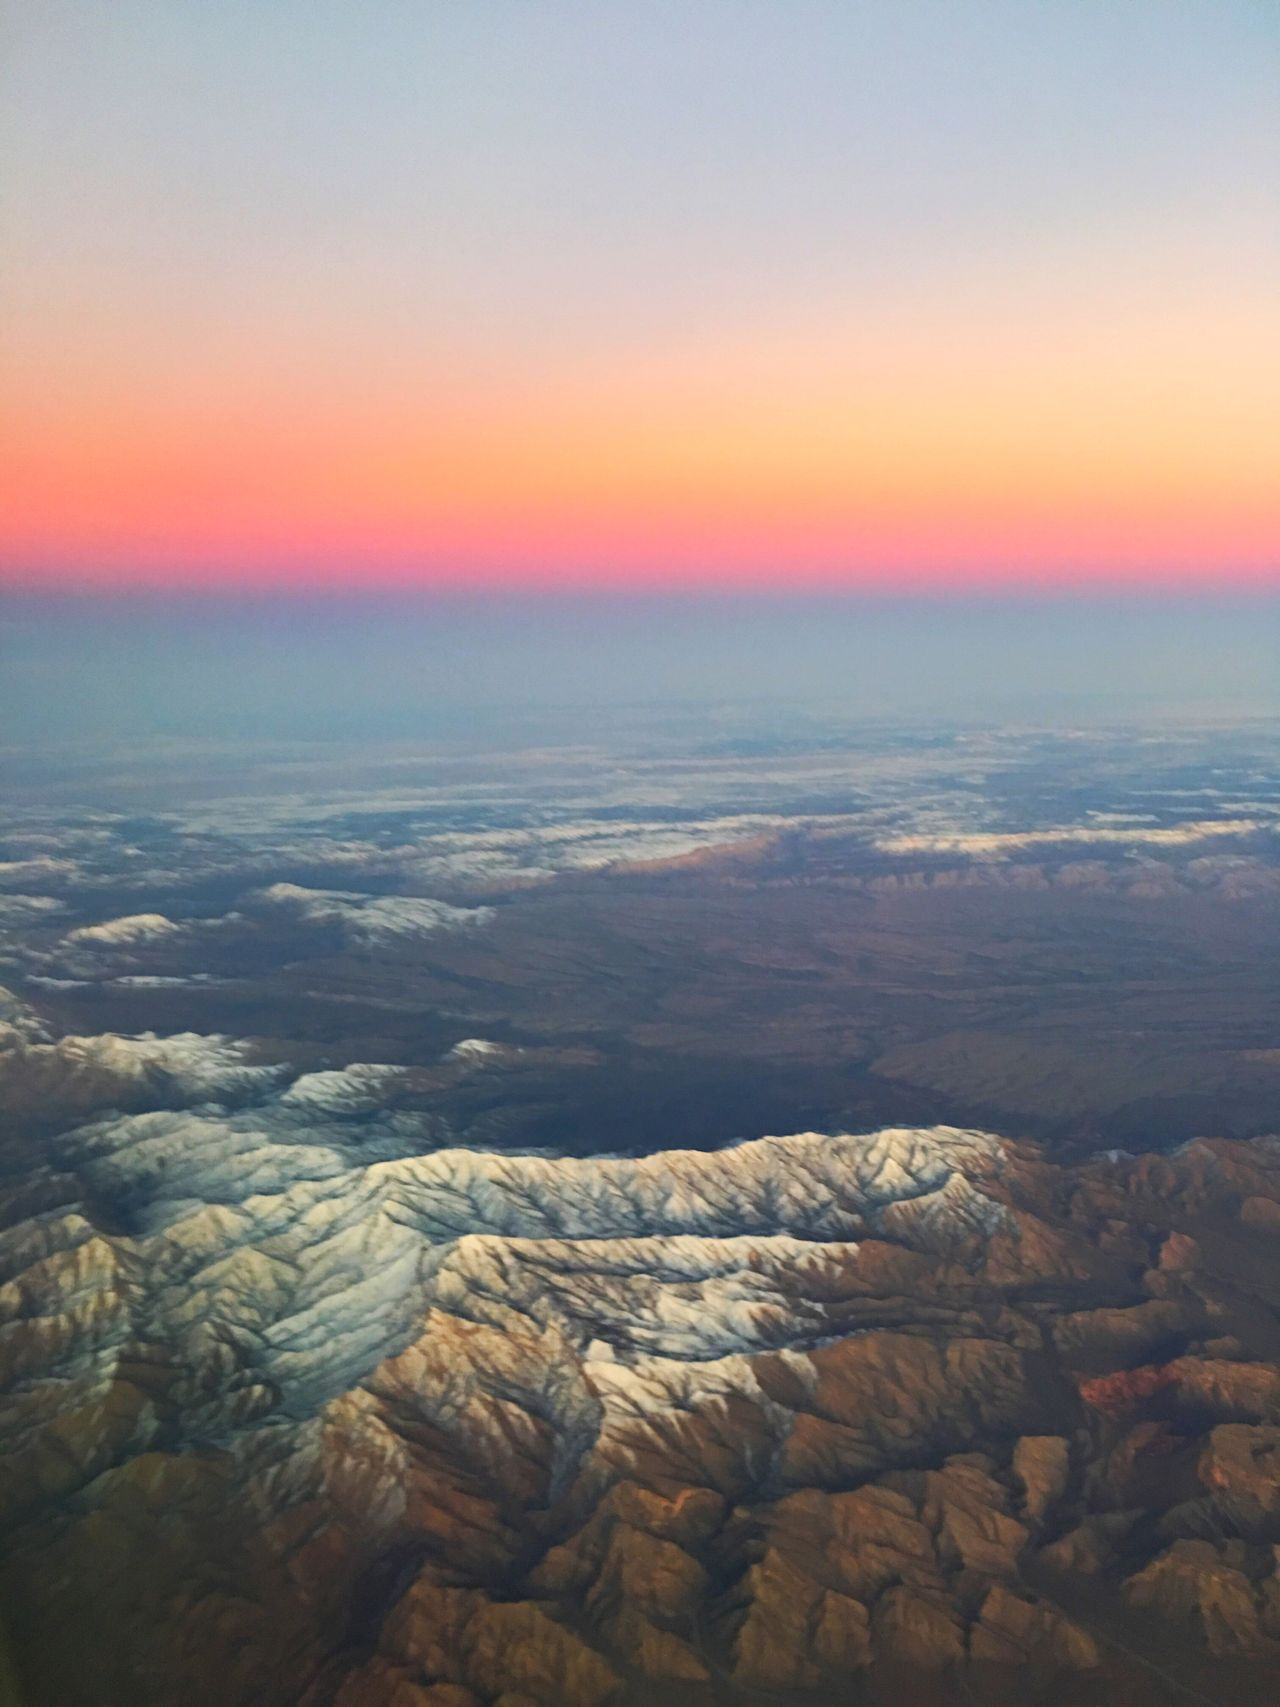 Winter desert Aerial Scenics Beauty In Nature Nature Tranquil Scene Sunset Tranquility Landscape Physical Geography Idyllic Sky Outdoors Environment Dramatic Sky No People Day Aerial Photography Travel Desert Landscape Desert Beauty